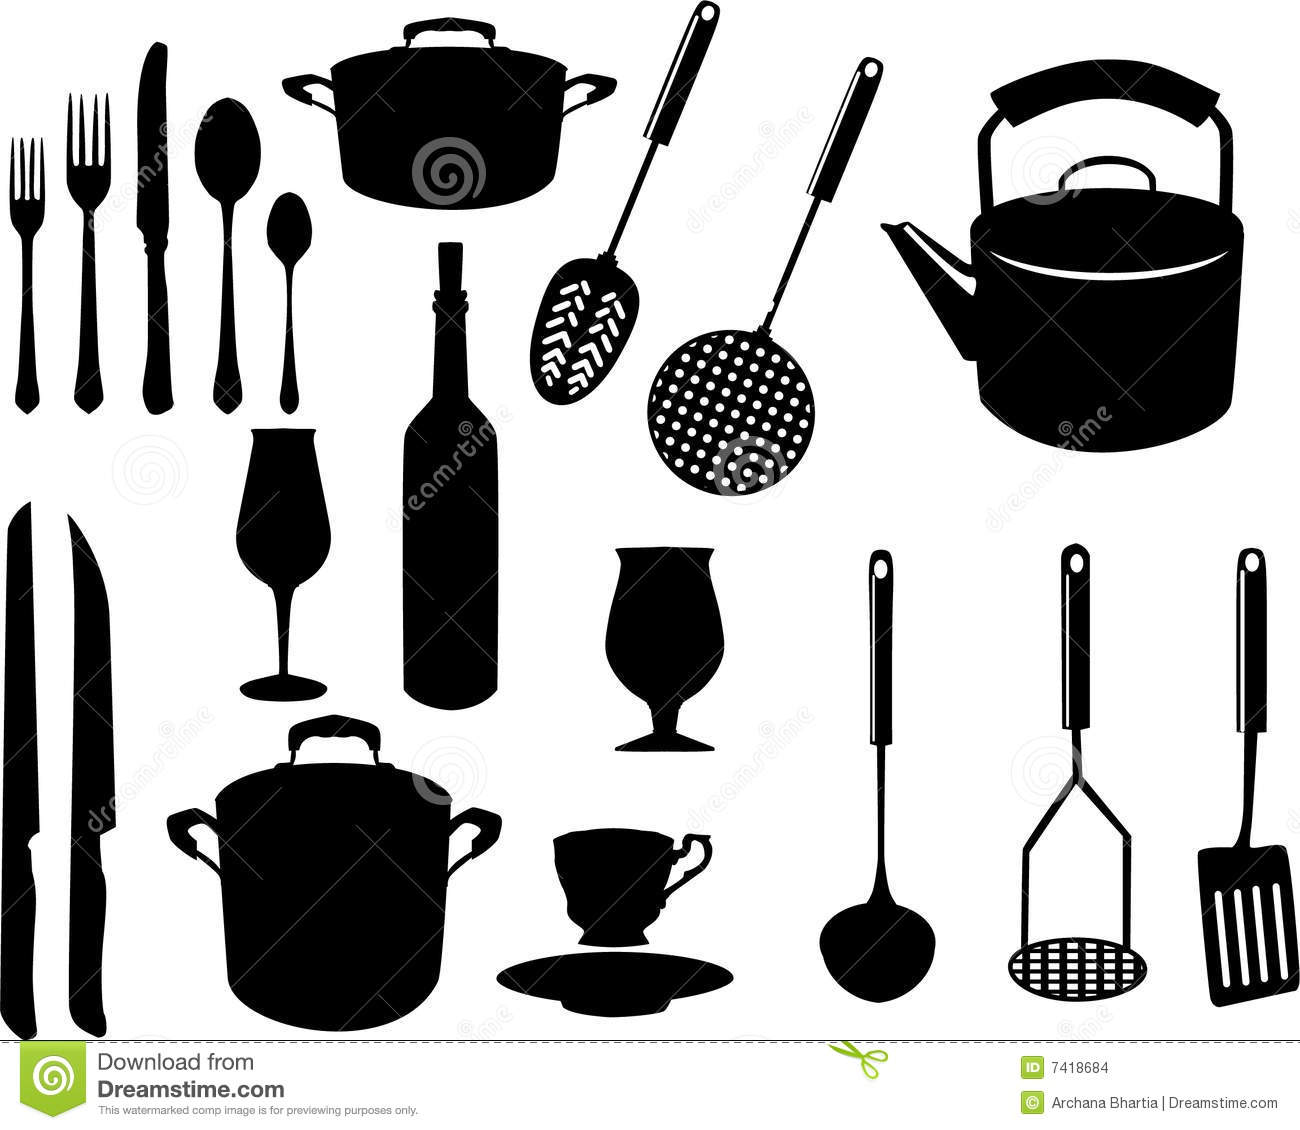 Ustensiles divers de cuisine illustration de vecteur for Site ustensile de cuisine